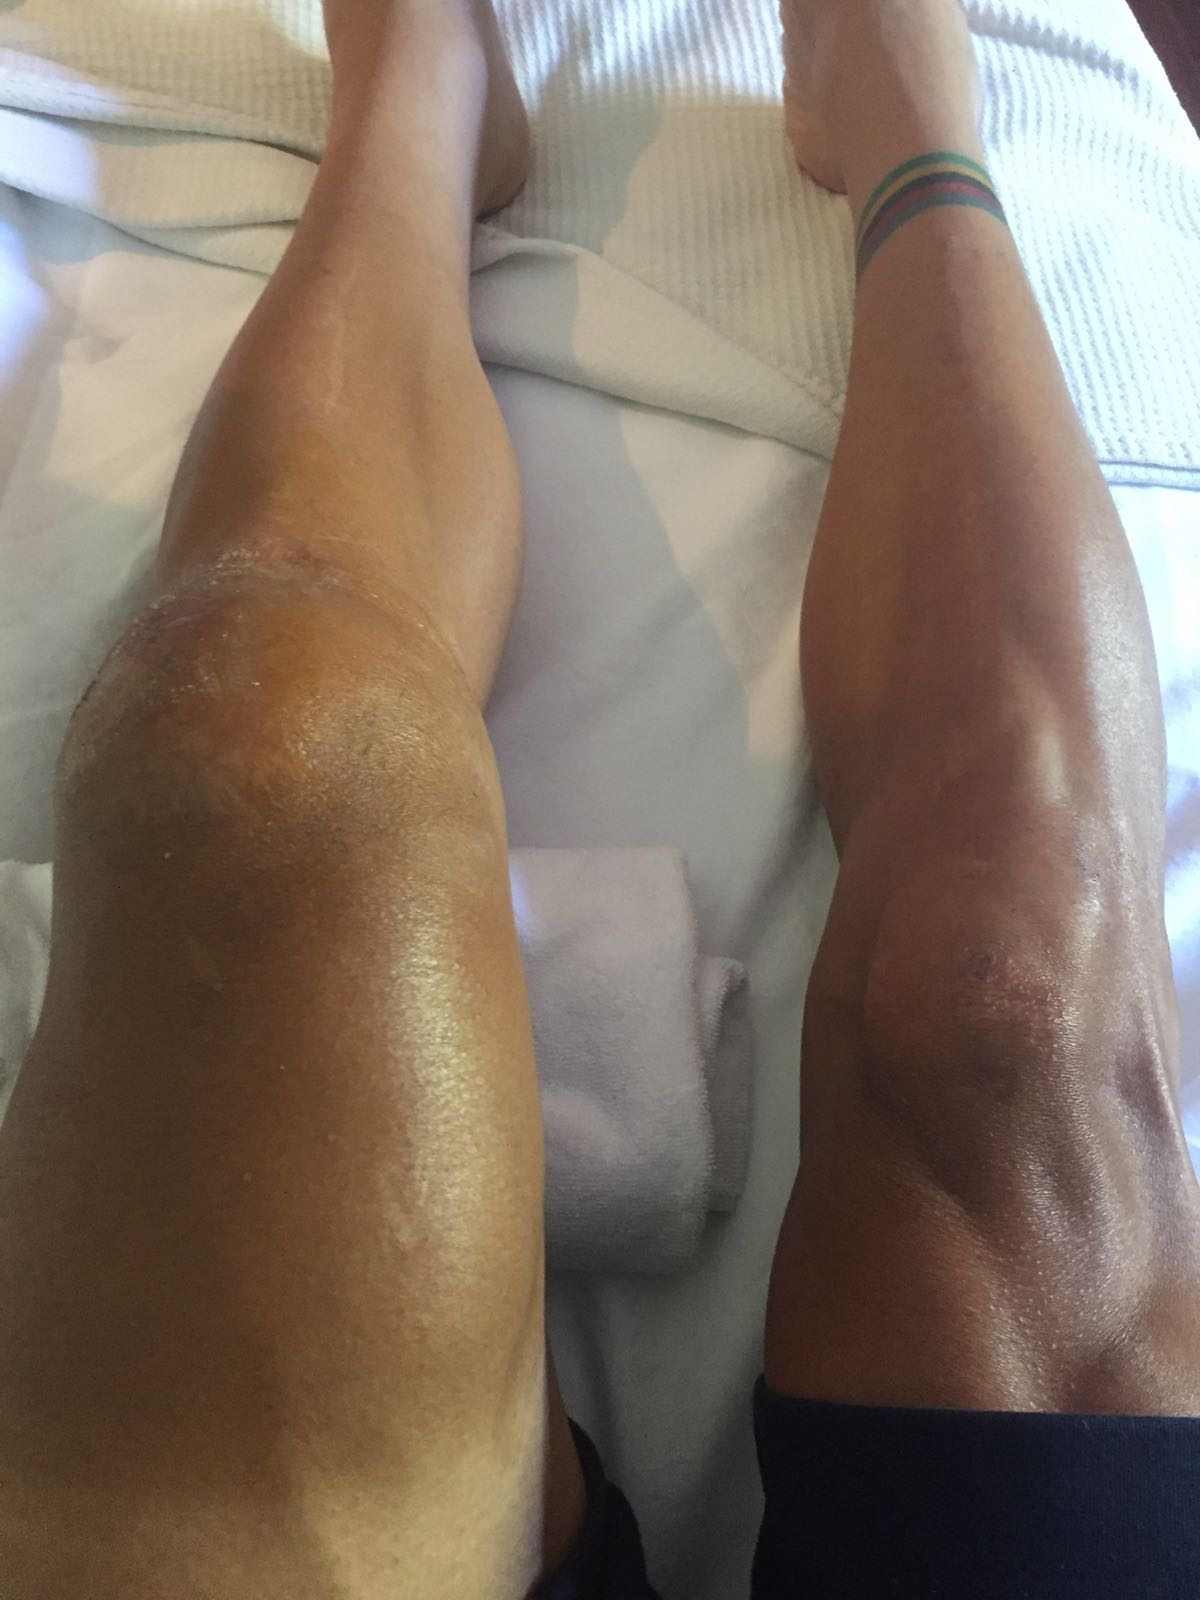 Philippe Gilbert On Twitter When You Have A Broken Knee Cap And